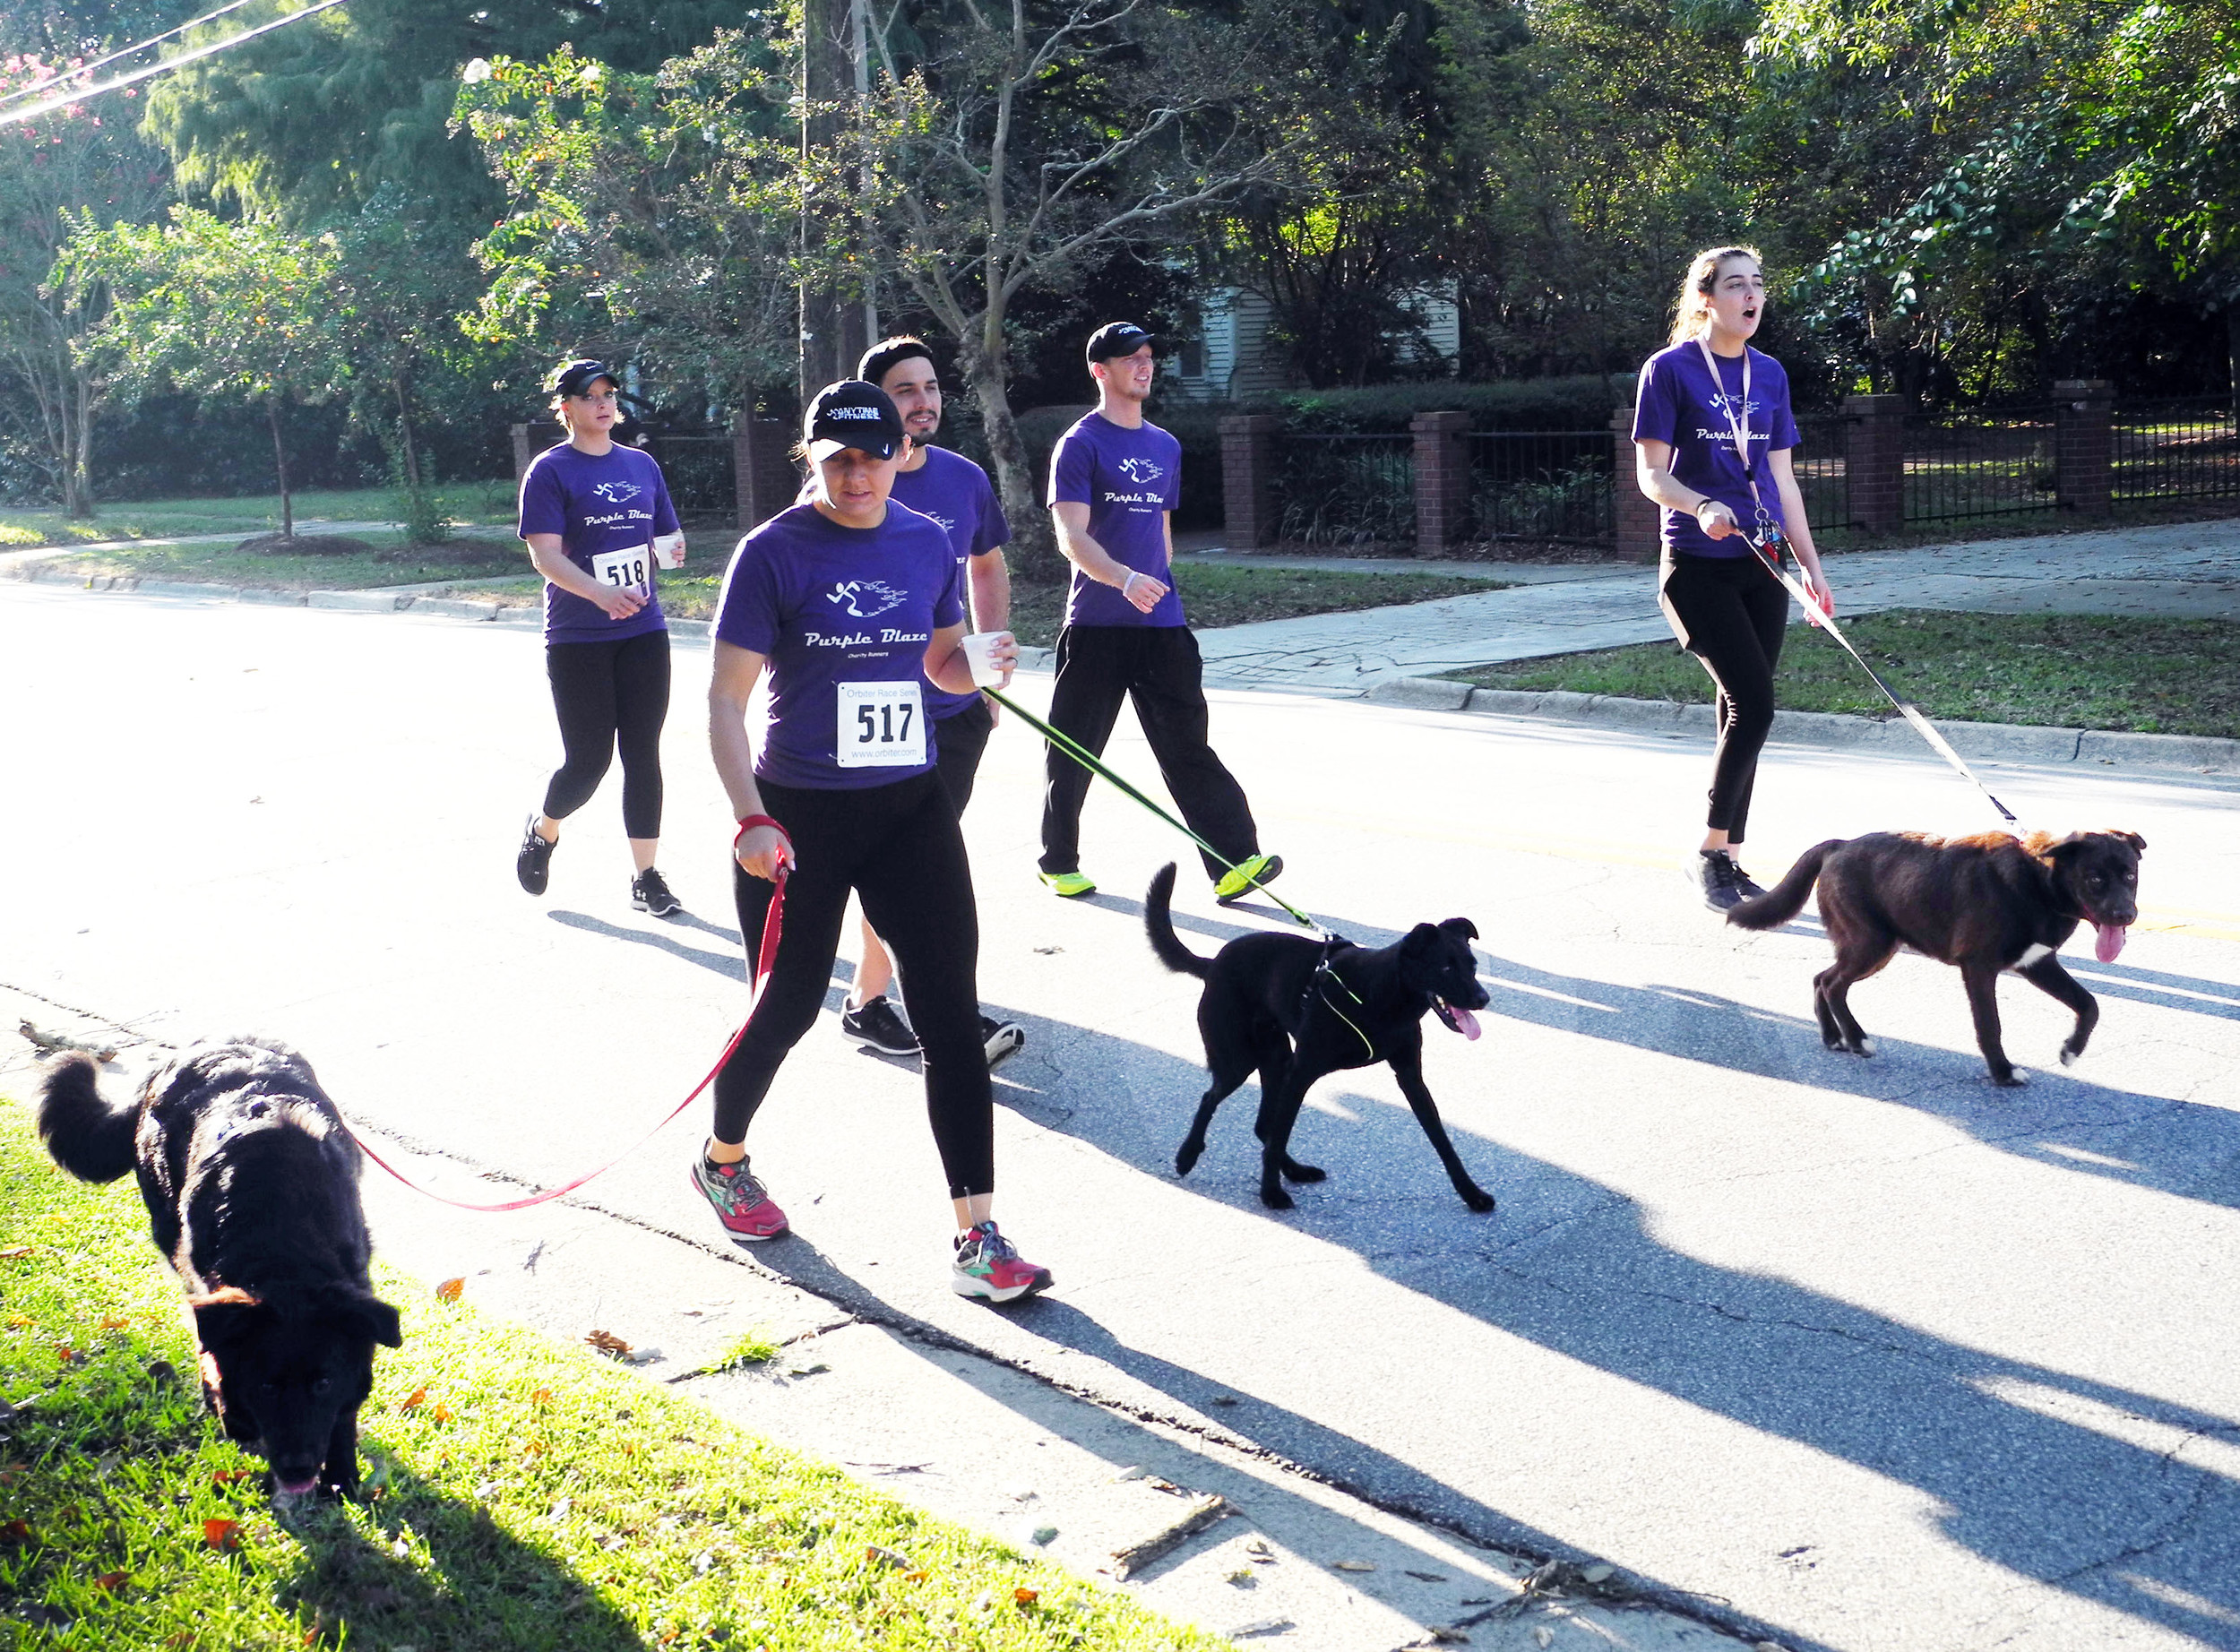 Team Purple Blaze, all employees of Anytime Fitness, walked the Forrest Ray 5K race Saturday, part of the Sumter Series road race schedule. The race through the Sumter historic district benefits the Sumter County Library.